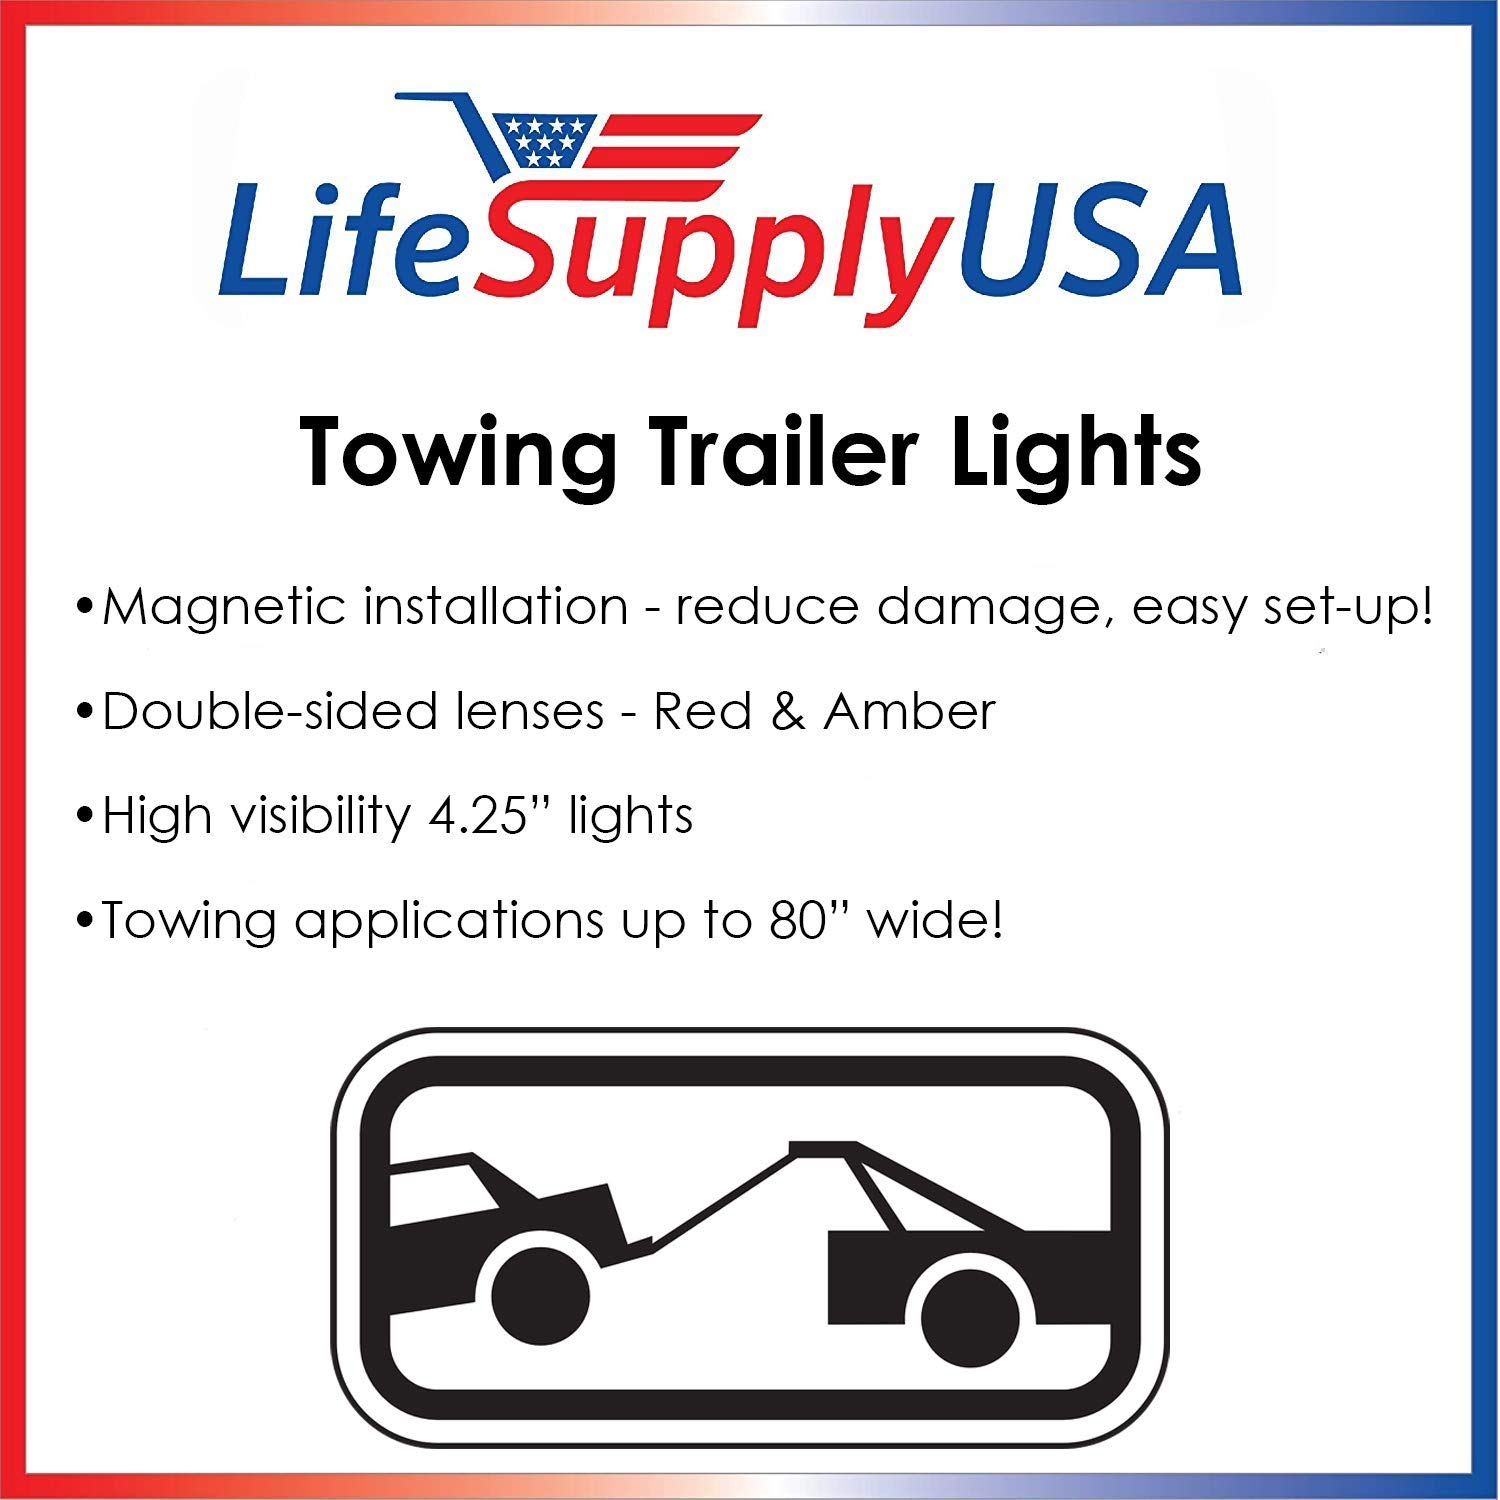 Easy Install 12 Volt Magnetic Towing Trailer Light Tail Wiringlight On How To Wire Bulbs Ehow Com Lights Automotive